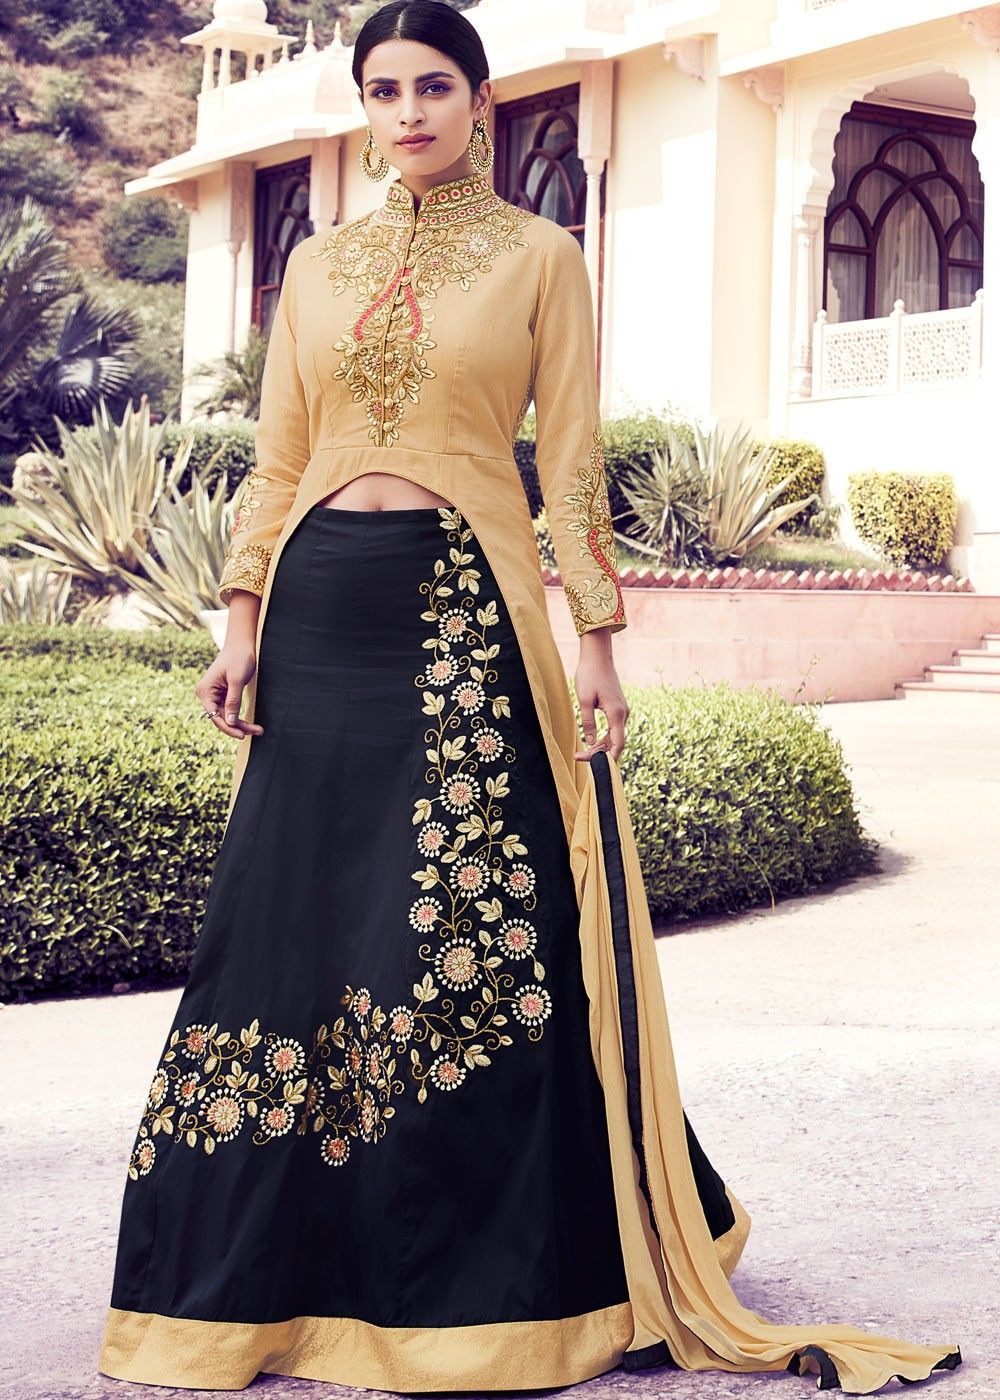 c15bde0f26 Buy Diwali special ethnic wear online at Panash India. We offer a hug range  of Diwali dresses for Women, mens, kids and girls in UK, USA, Australia,  Canada